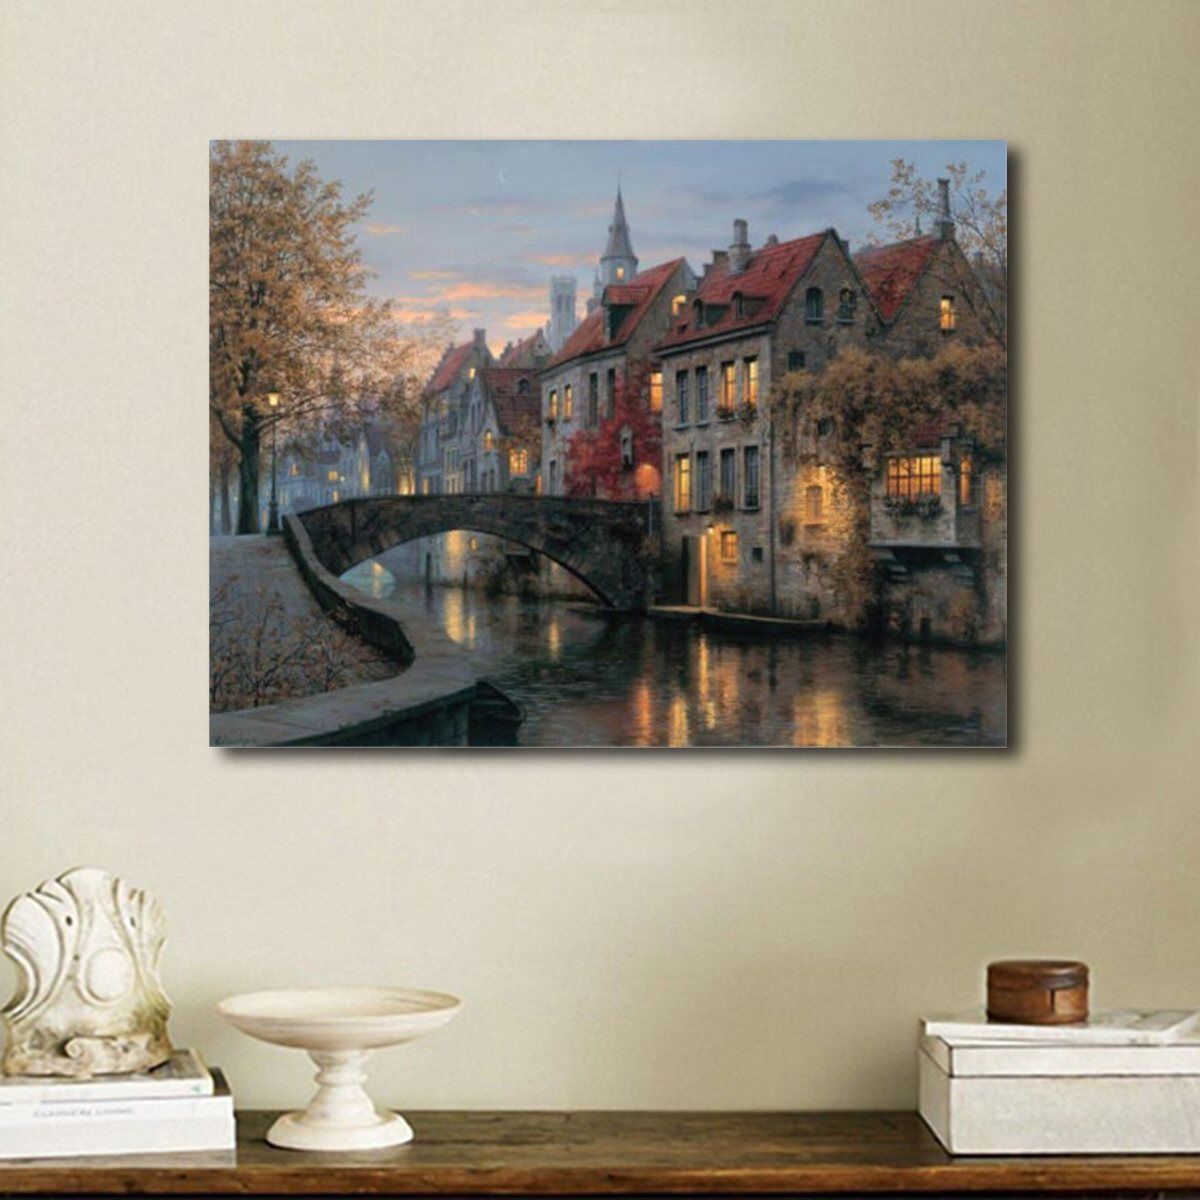 Modern river house canvas painting 40x30cm scenic pictures for Modern home decor pieces